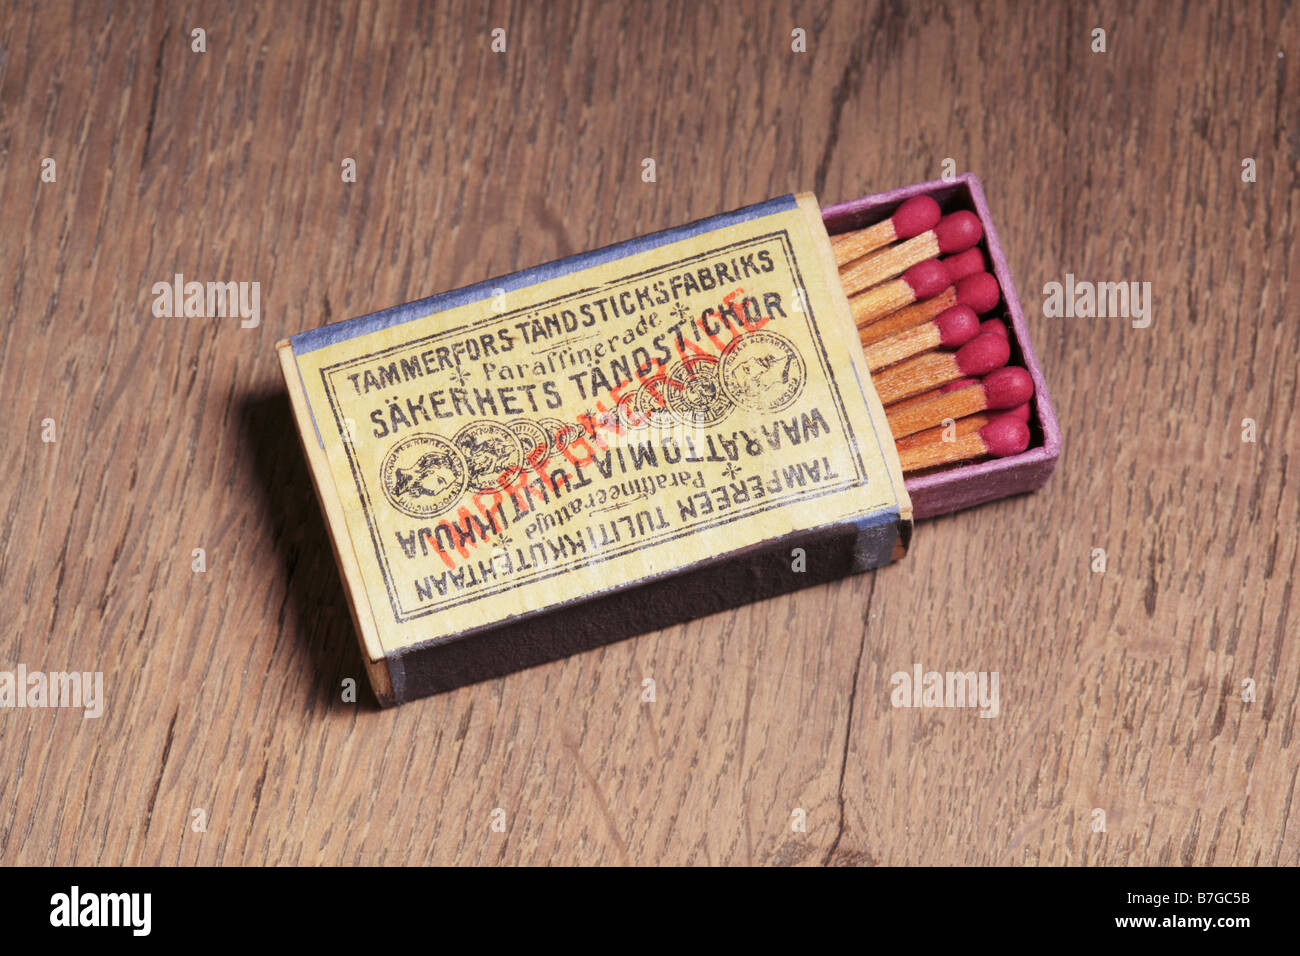 Old box of safety matches manufactured in Tampere Finland in 19th century Stock Photo